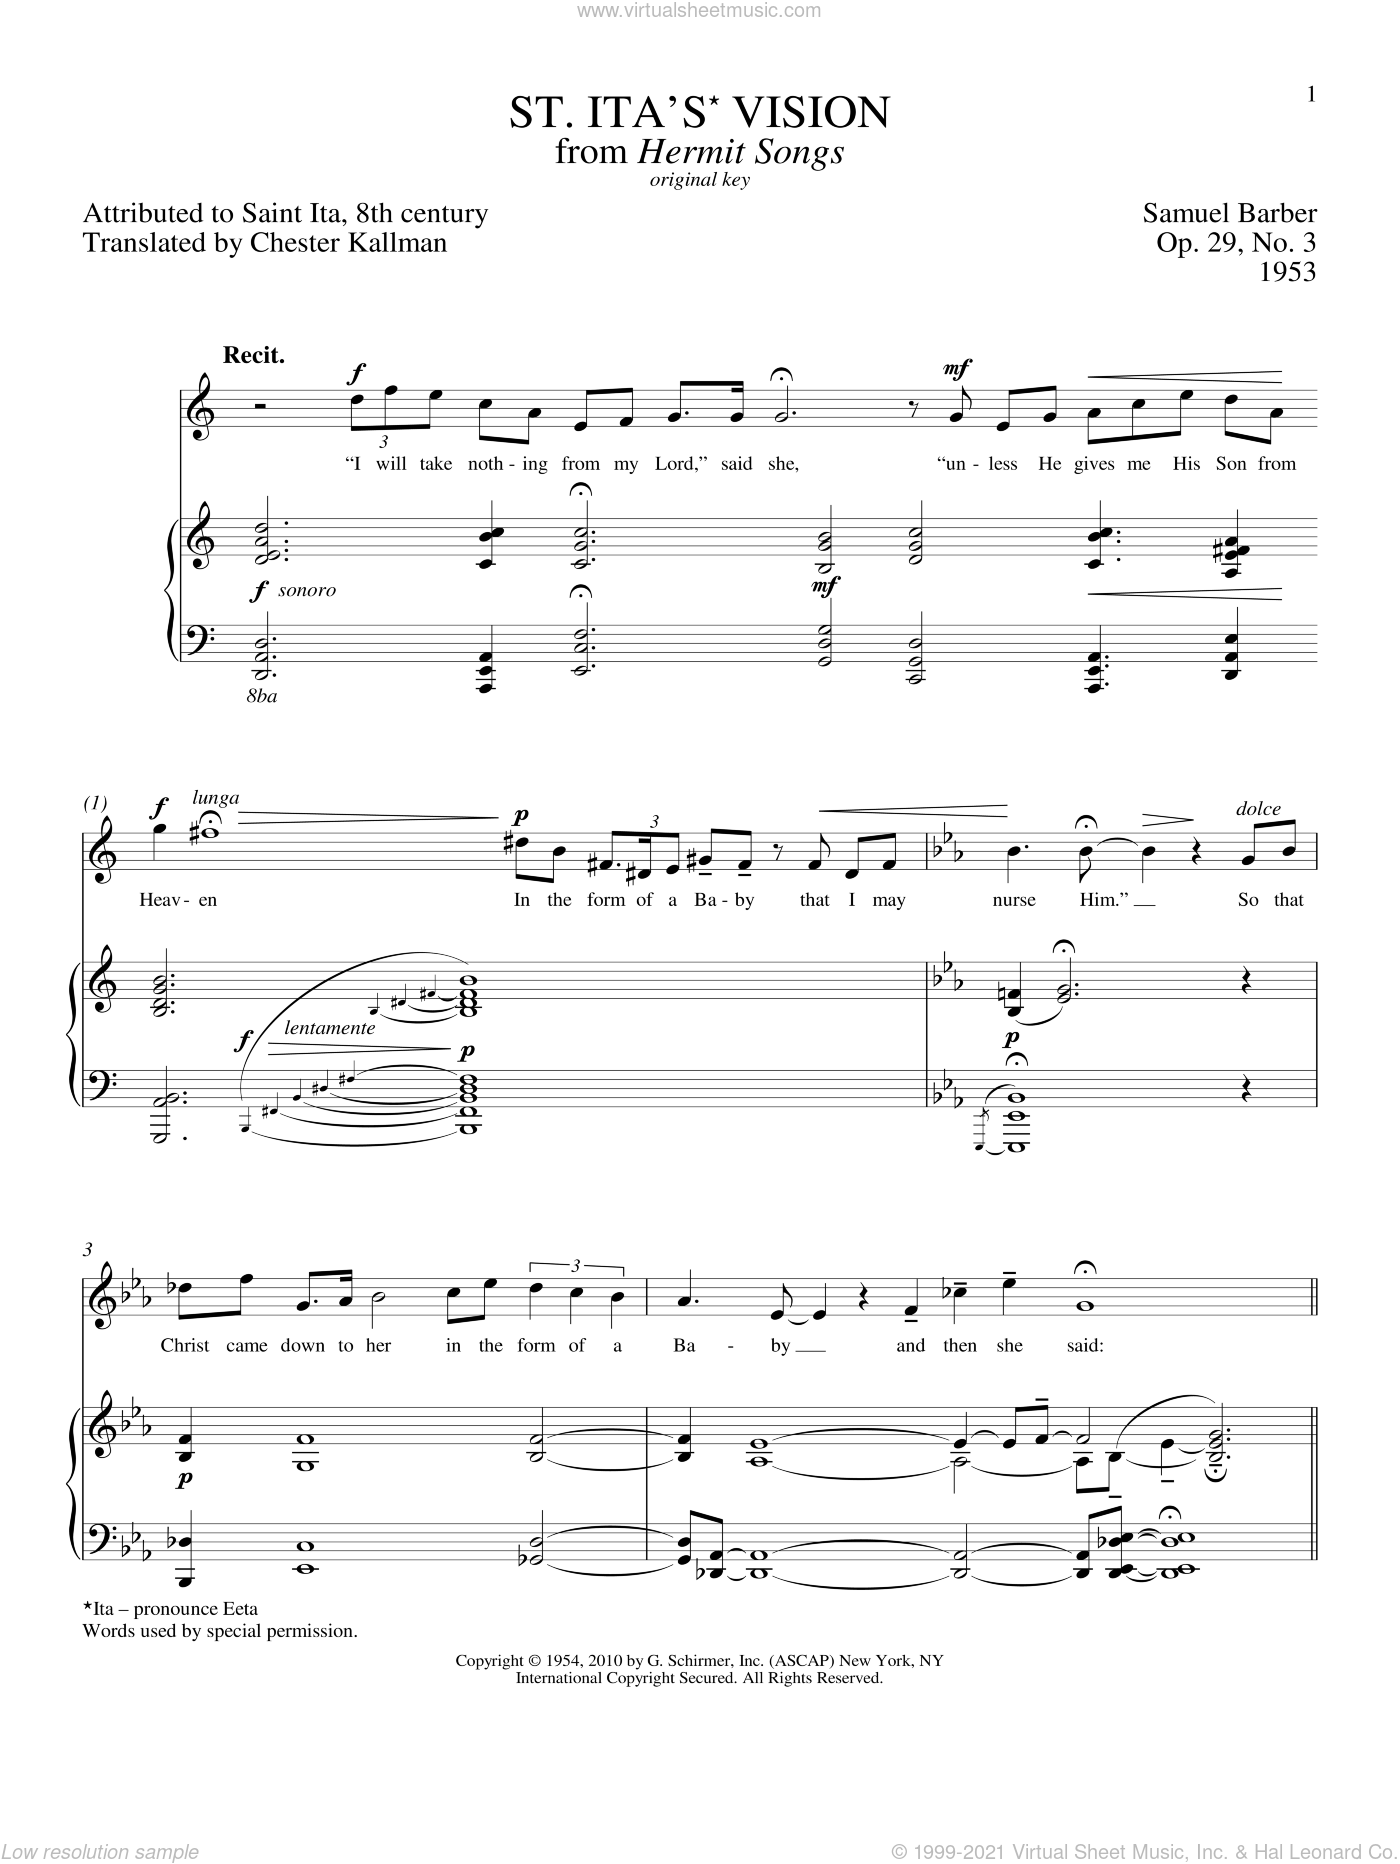 St. Ita's Vision sheet music for voice and piano (High Voice) by Samuel Barber, Richard Walters and Chester Kallmann, classical score, intermediate